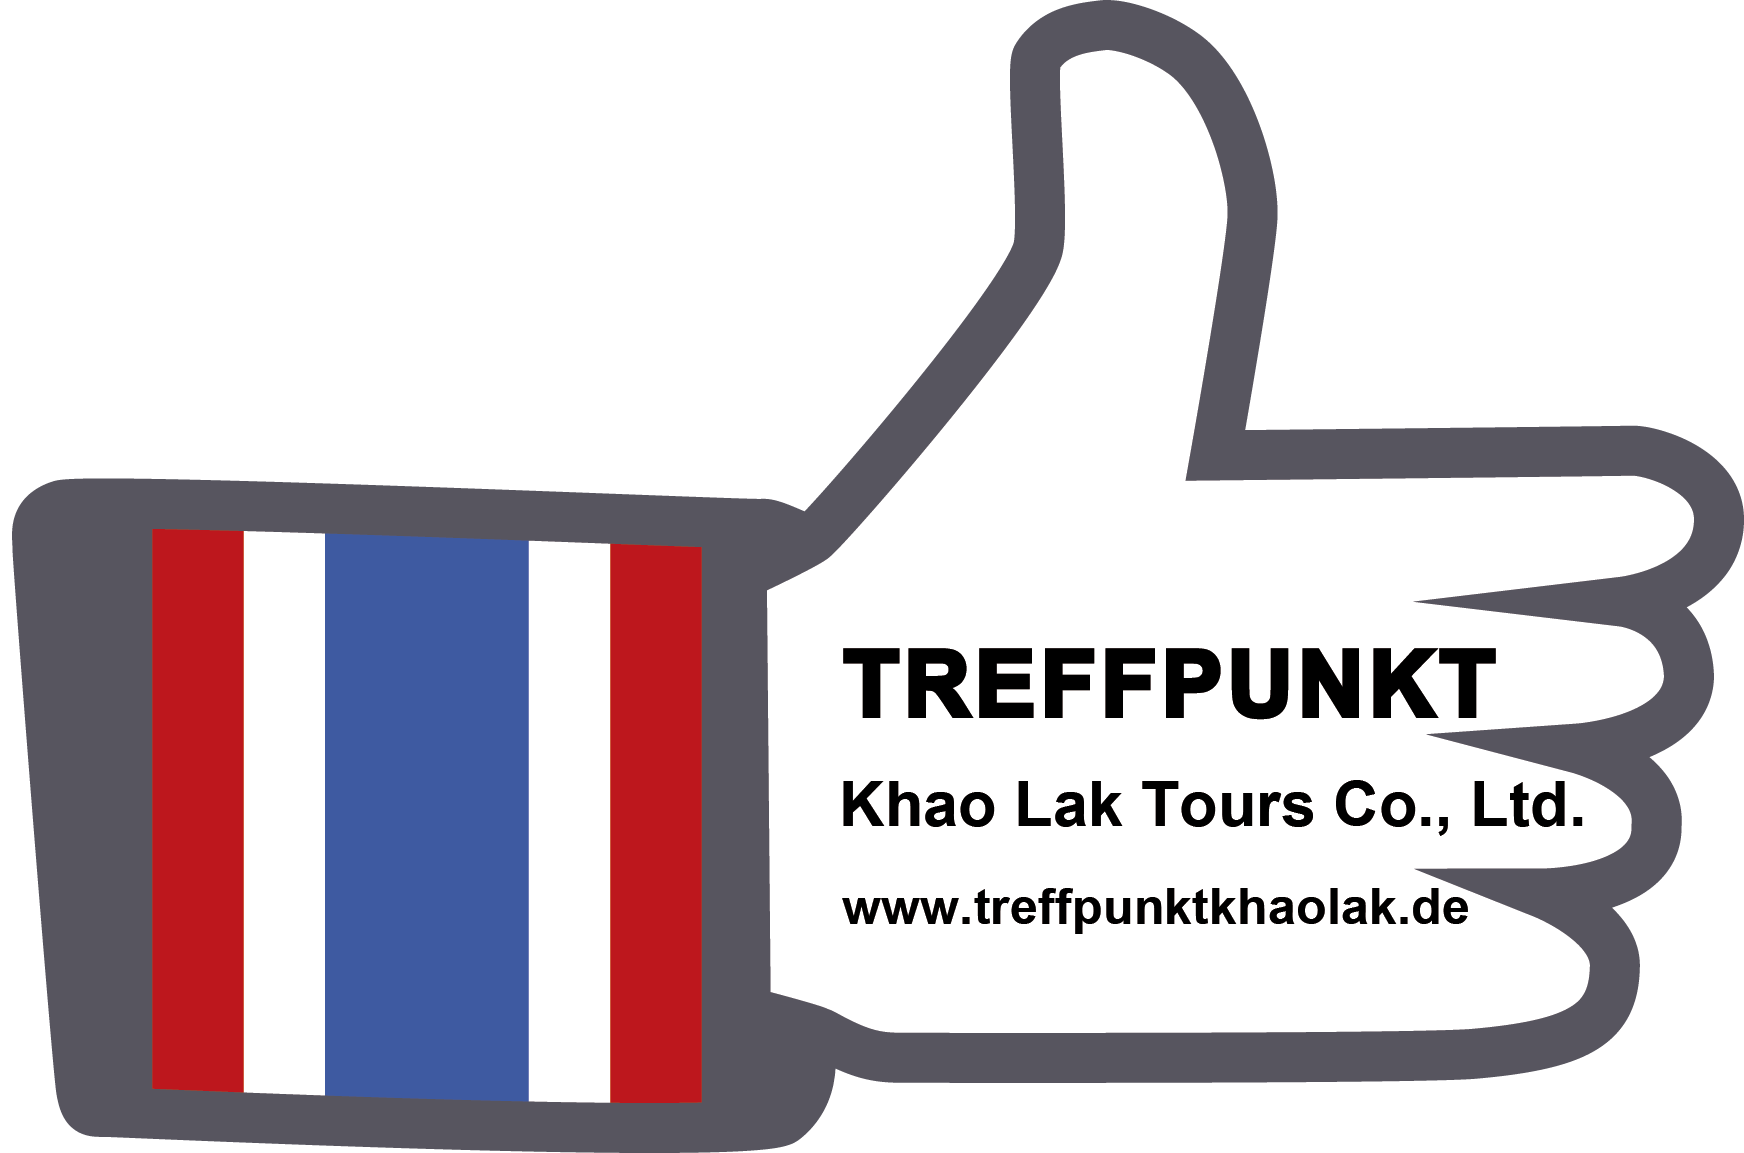 Treffpunkt Khao Lak Tours Co. Ltd.